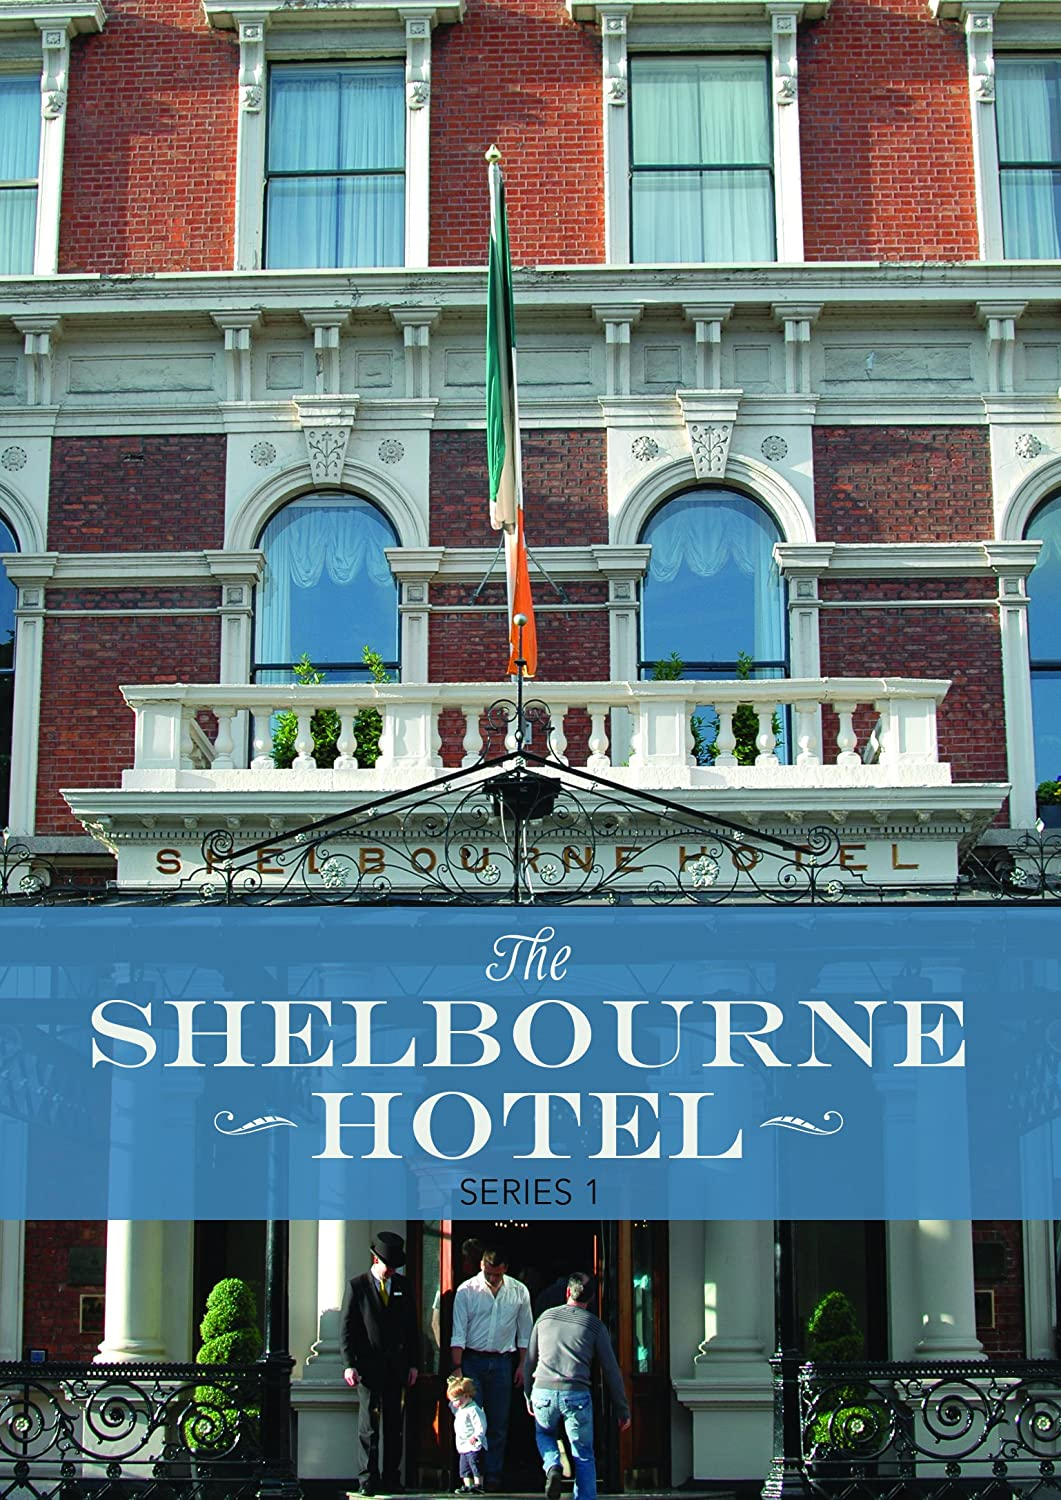 The Shelbourne Hotel: Series 1